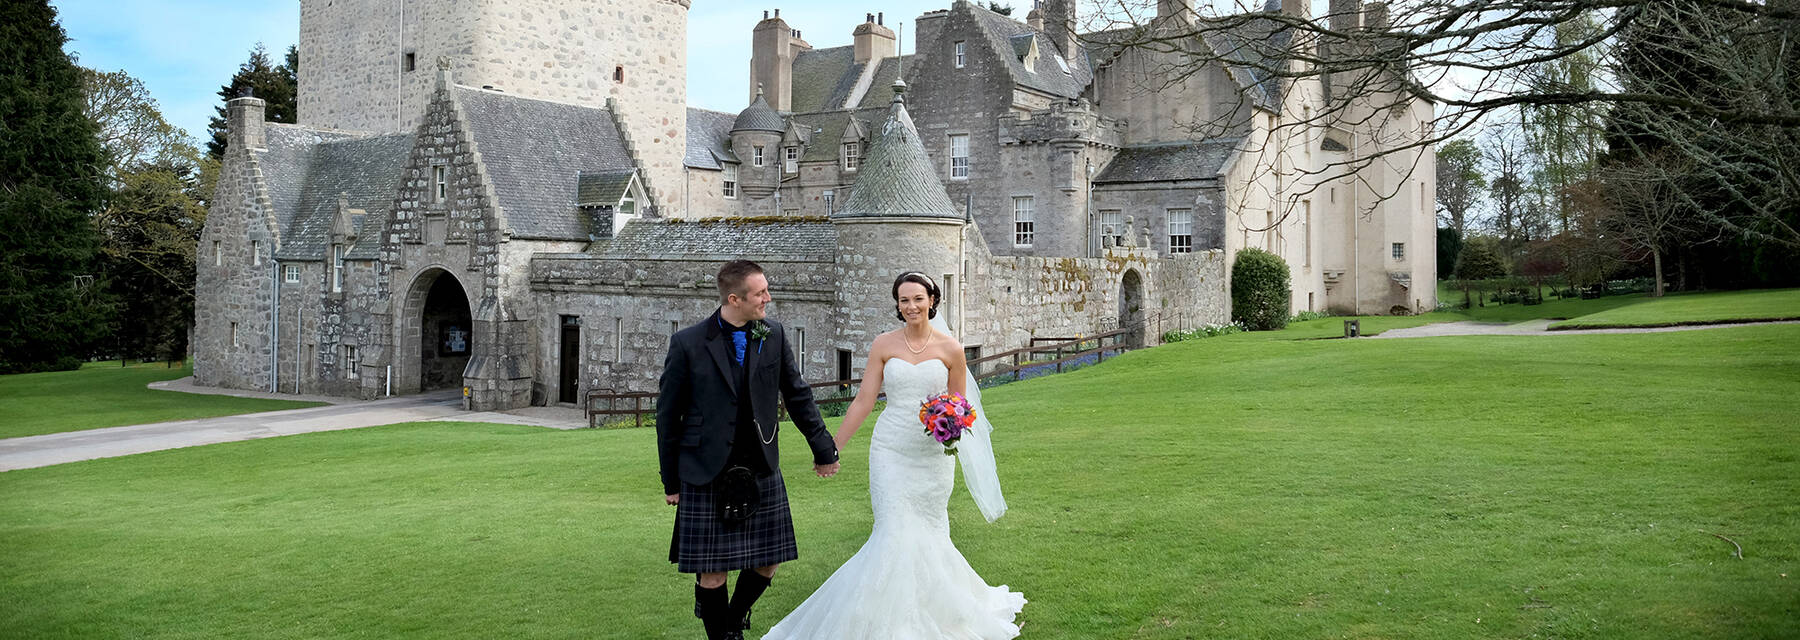 Wedding couple walking across a lawn in front of Drum Castle